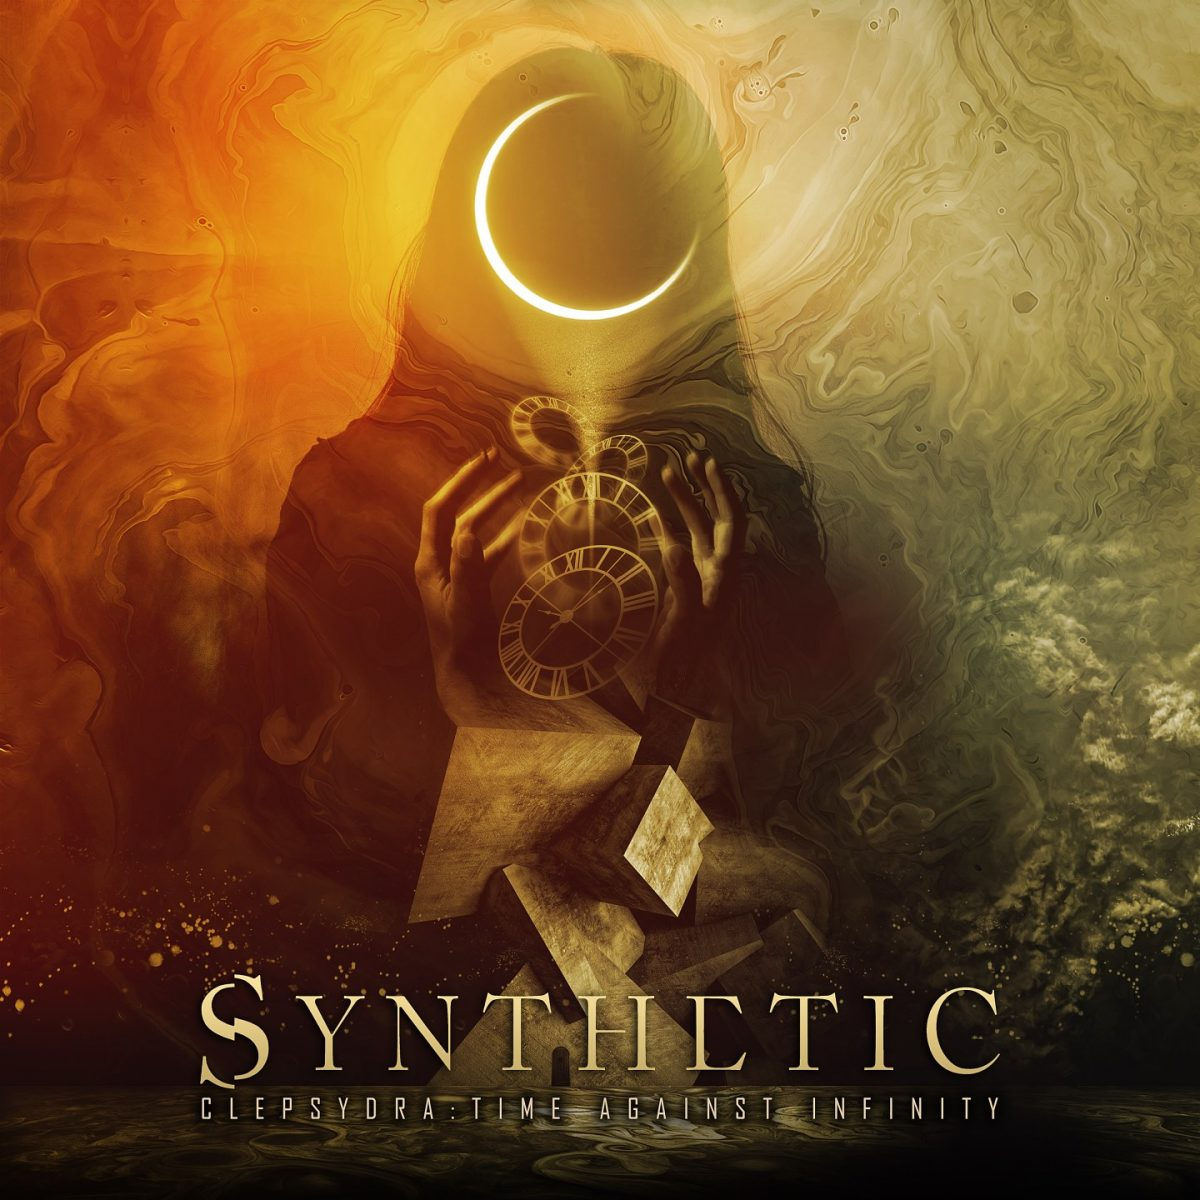 synthetic-clepsydra-time-against-infinity-album-review